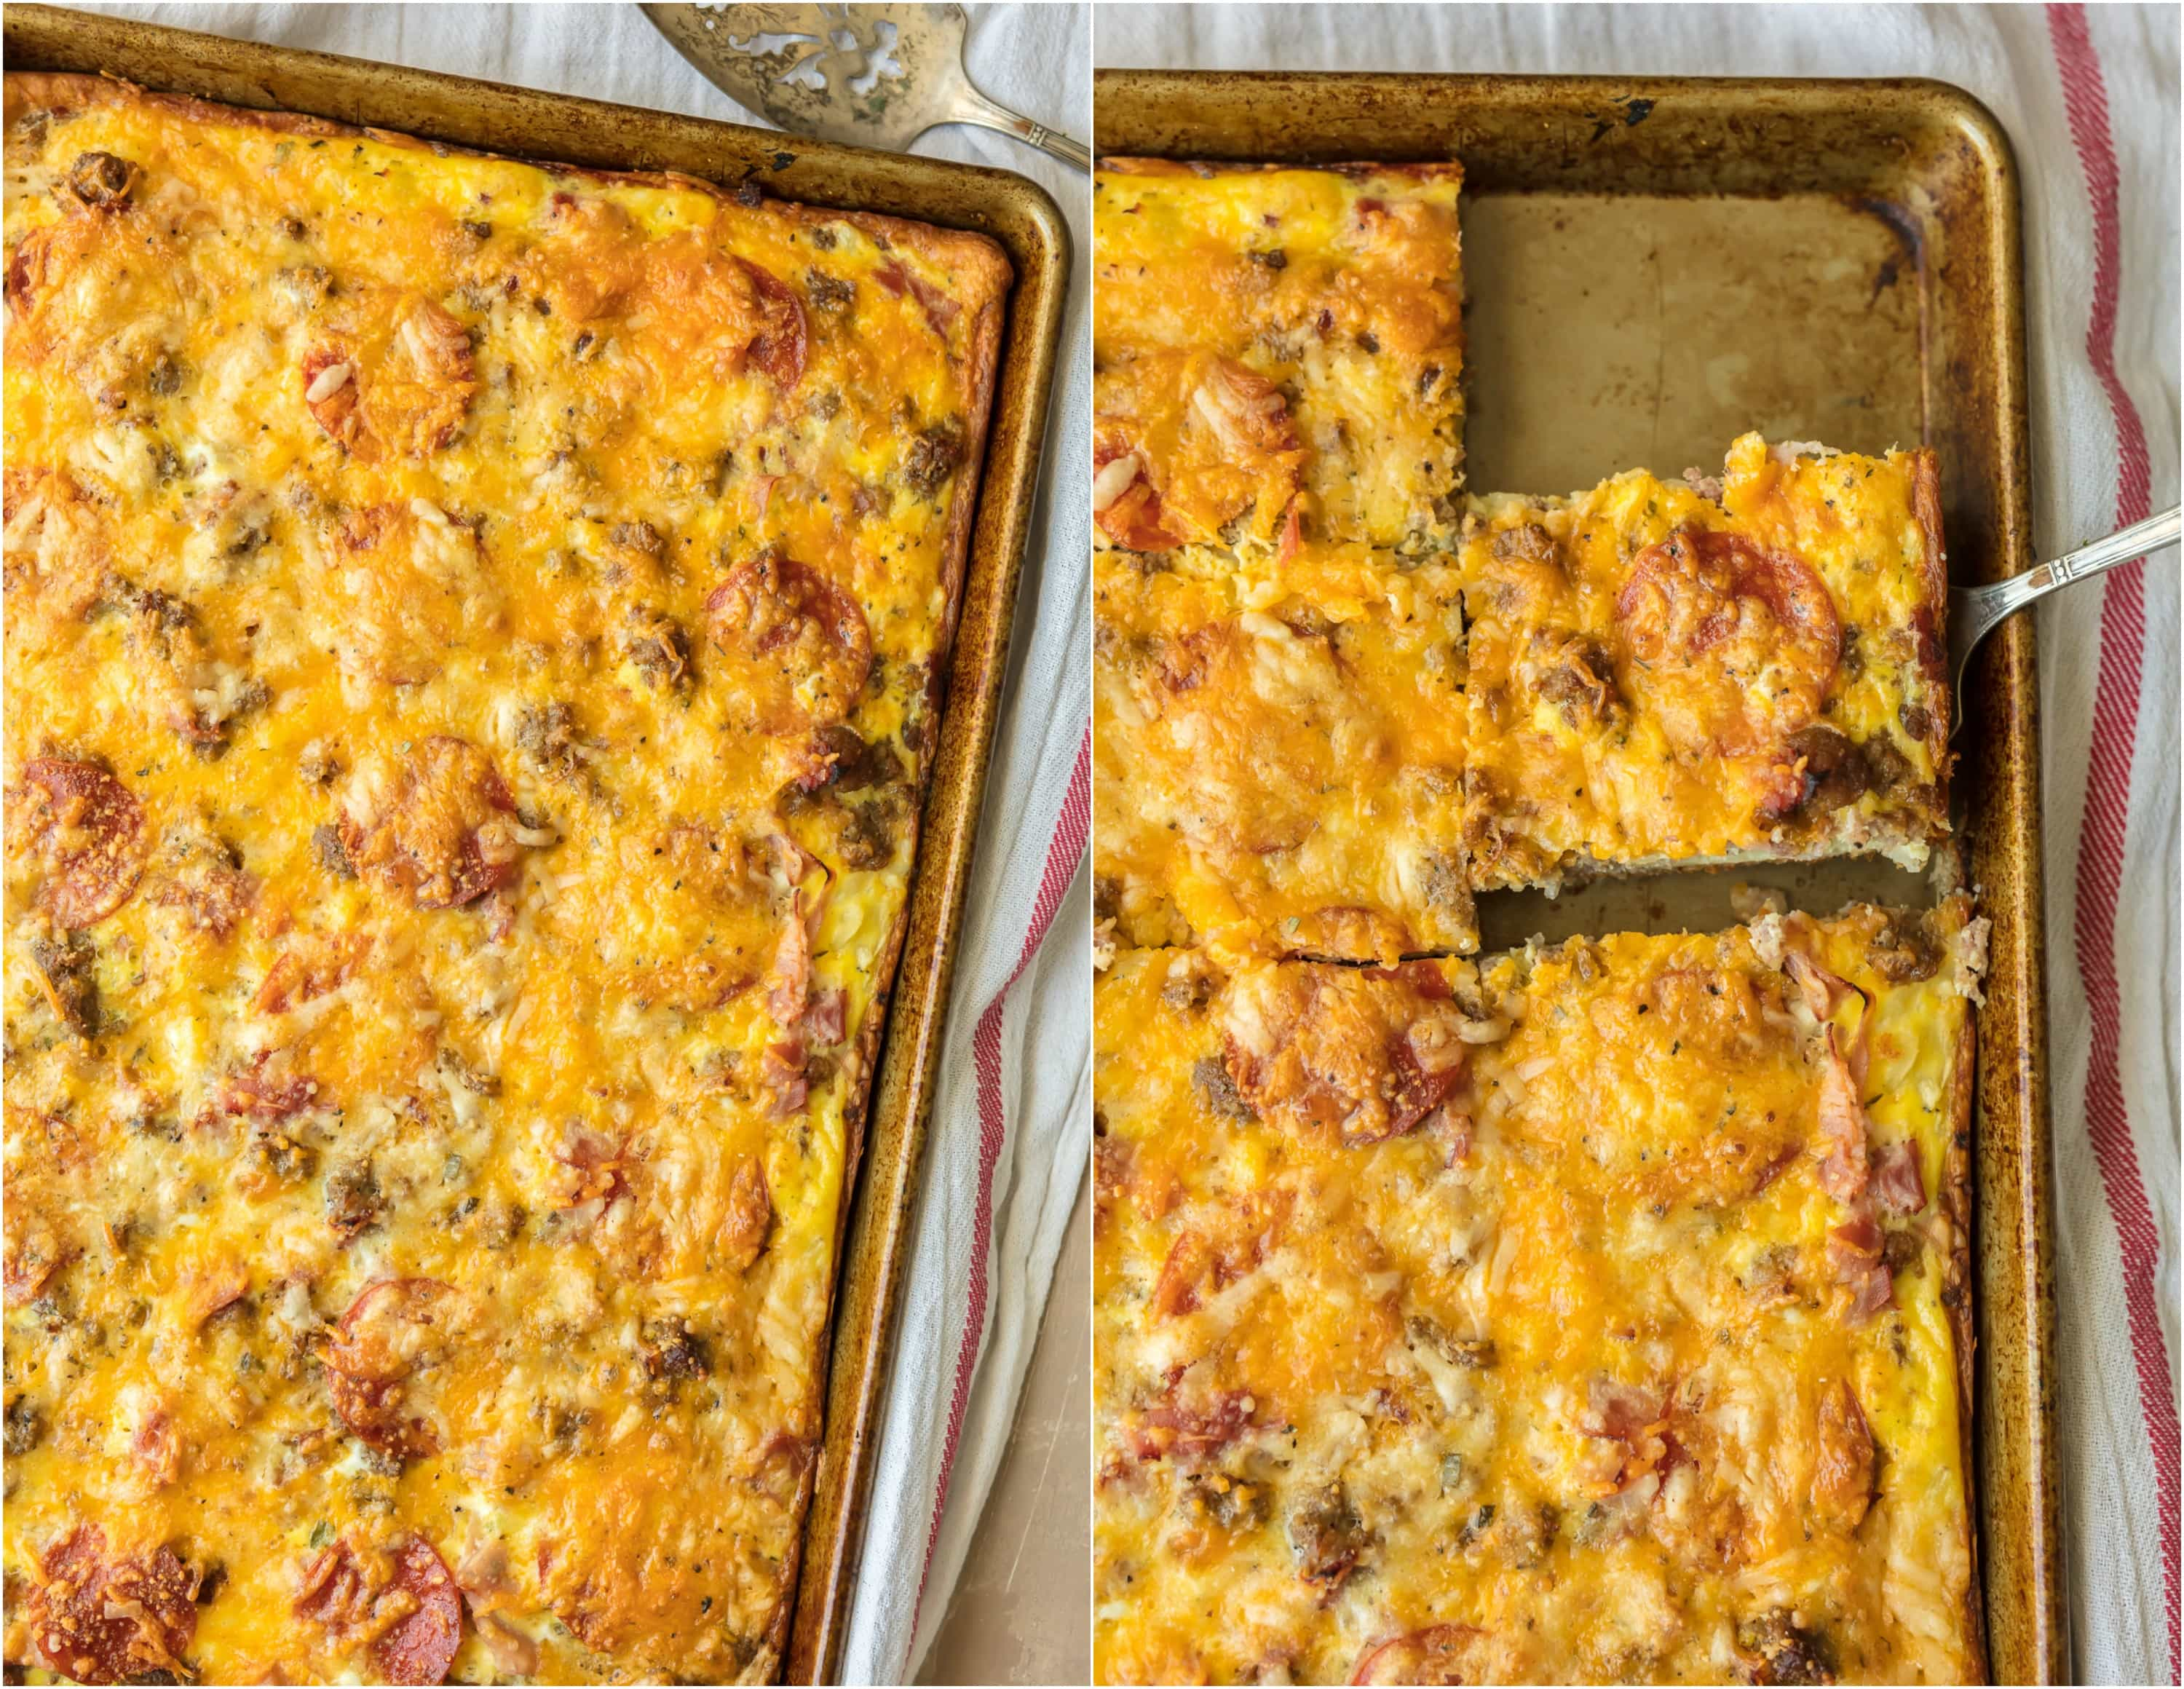 MEAT LOVERS BREAKFAST PIZZA is the perfect Christmas morning breakfast recipe! Loaded with pepperoni, bacon, sausage, hamburger, egg, hash browns, and cheese! BEST SHEET PAN BREAKFAST PIZZA EVER!